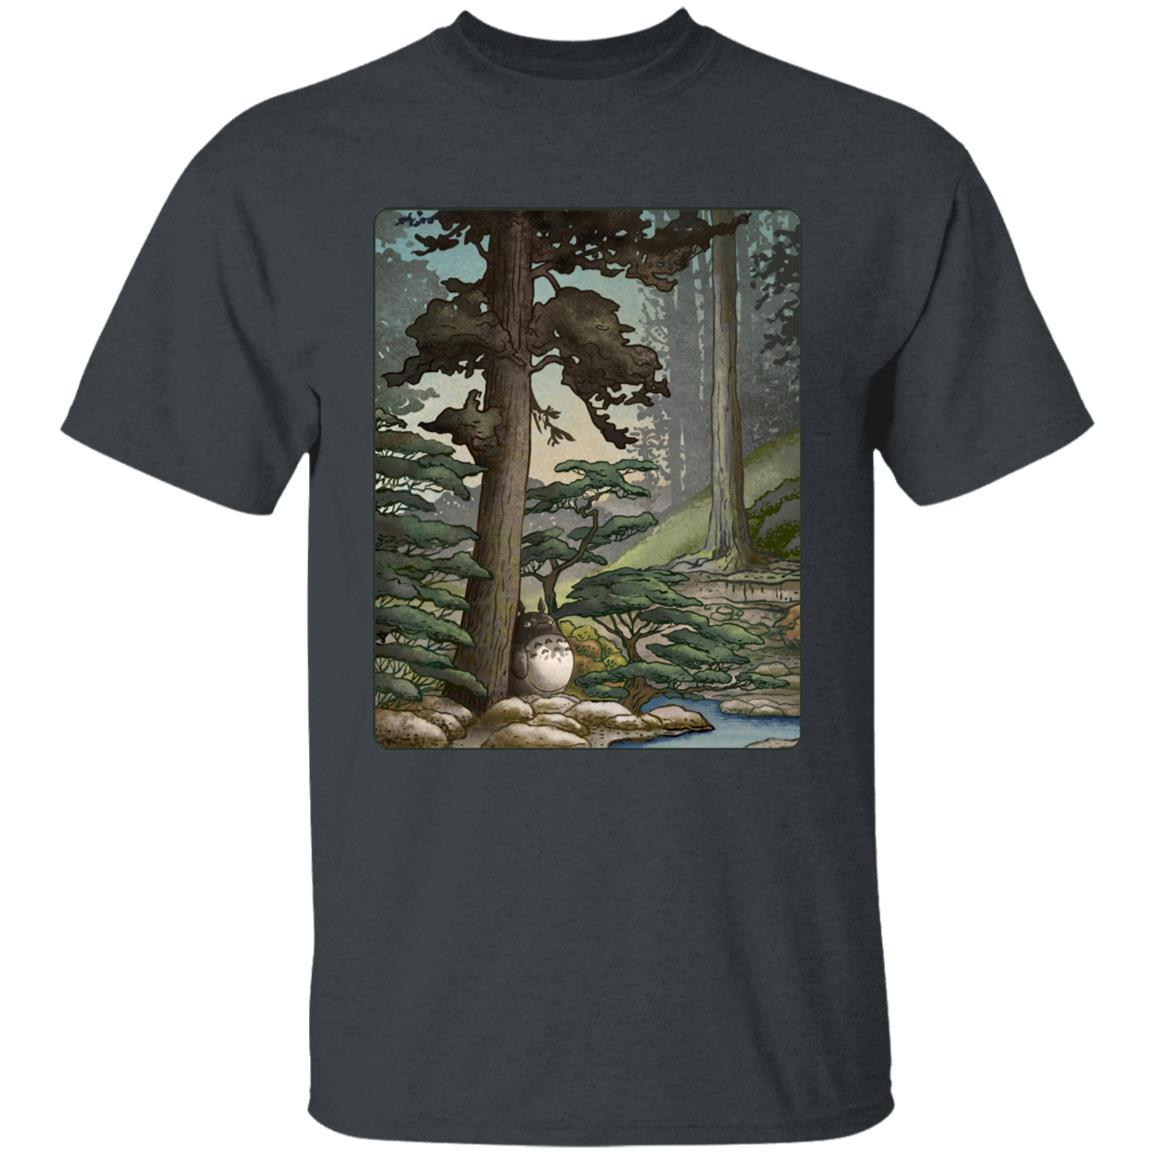 Totoro in the Landscape T Shirt